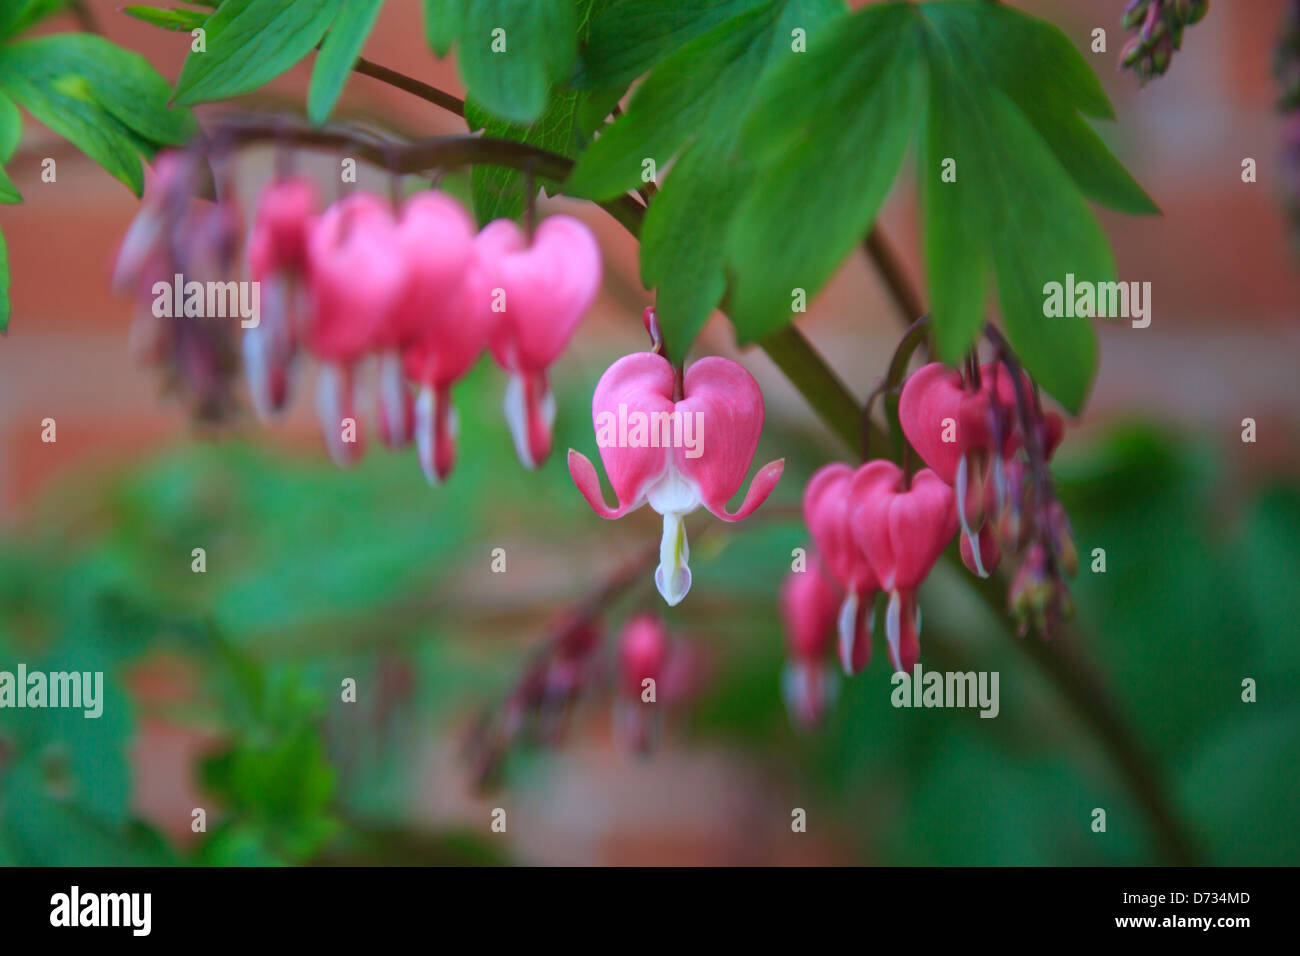 Bleeding Heart Red Heart Shaped Flowers With White Tips Stock Photo